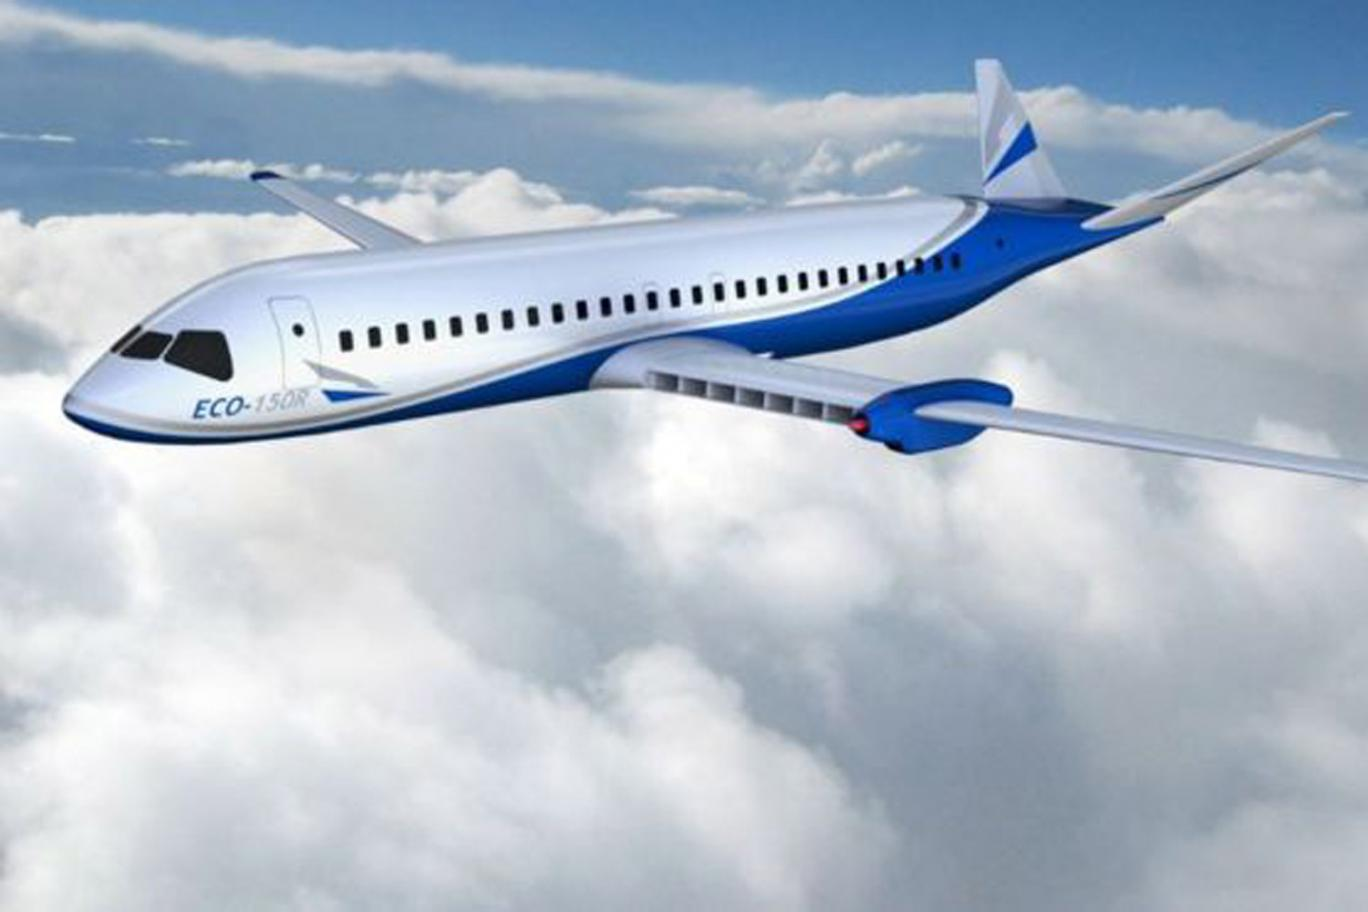 electric planes could fly from London to Paris